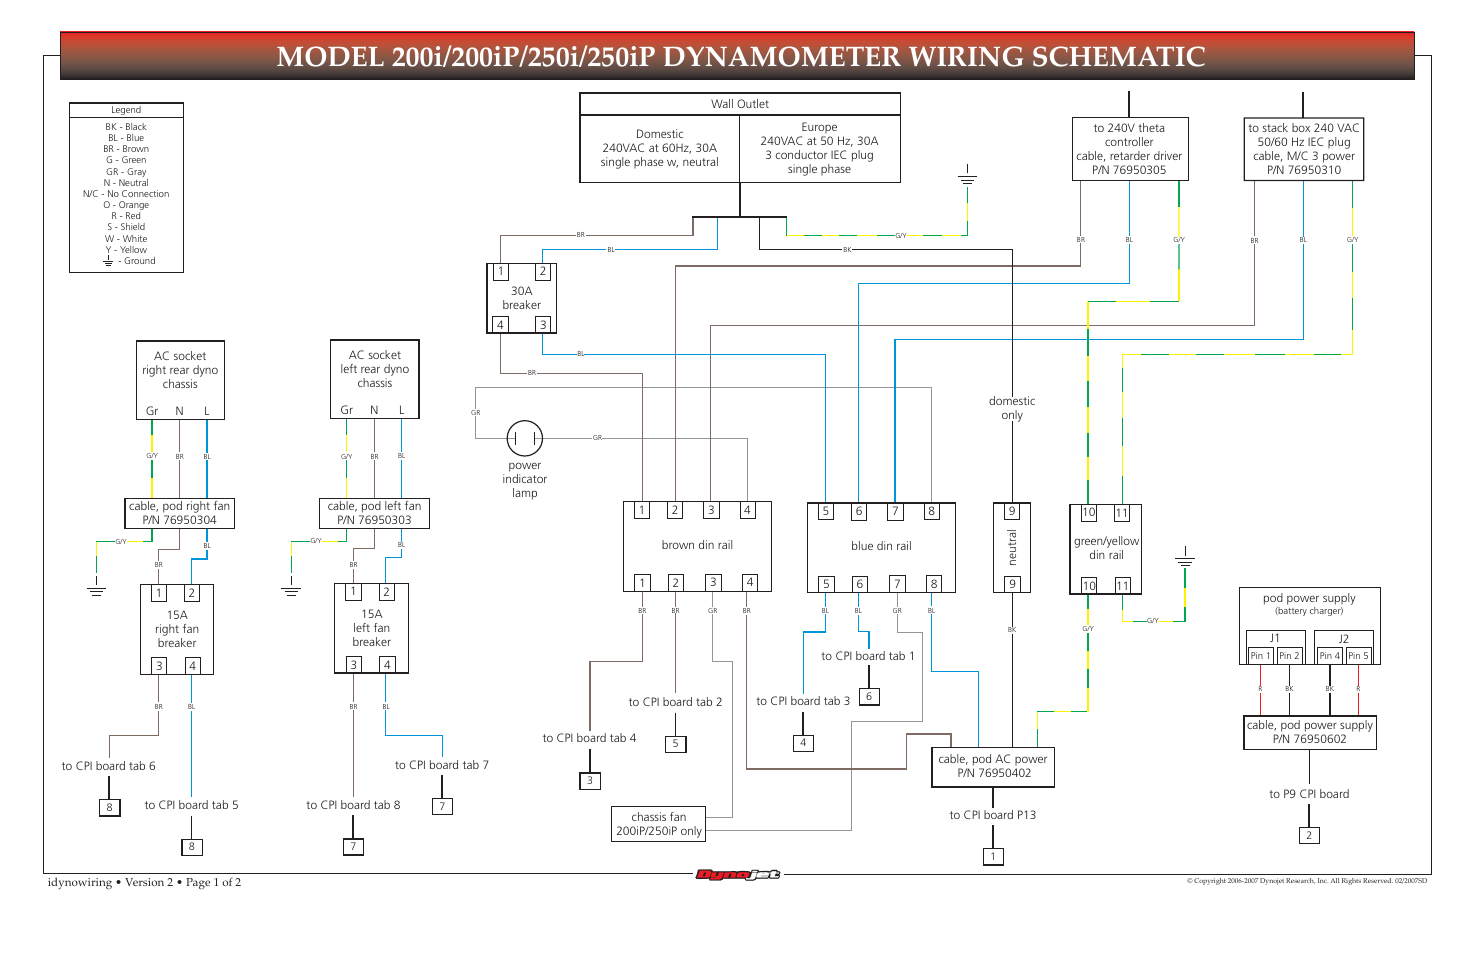 Dynojet 250ip  Dynamometer Wiring Schematic User Manual